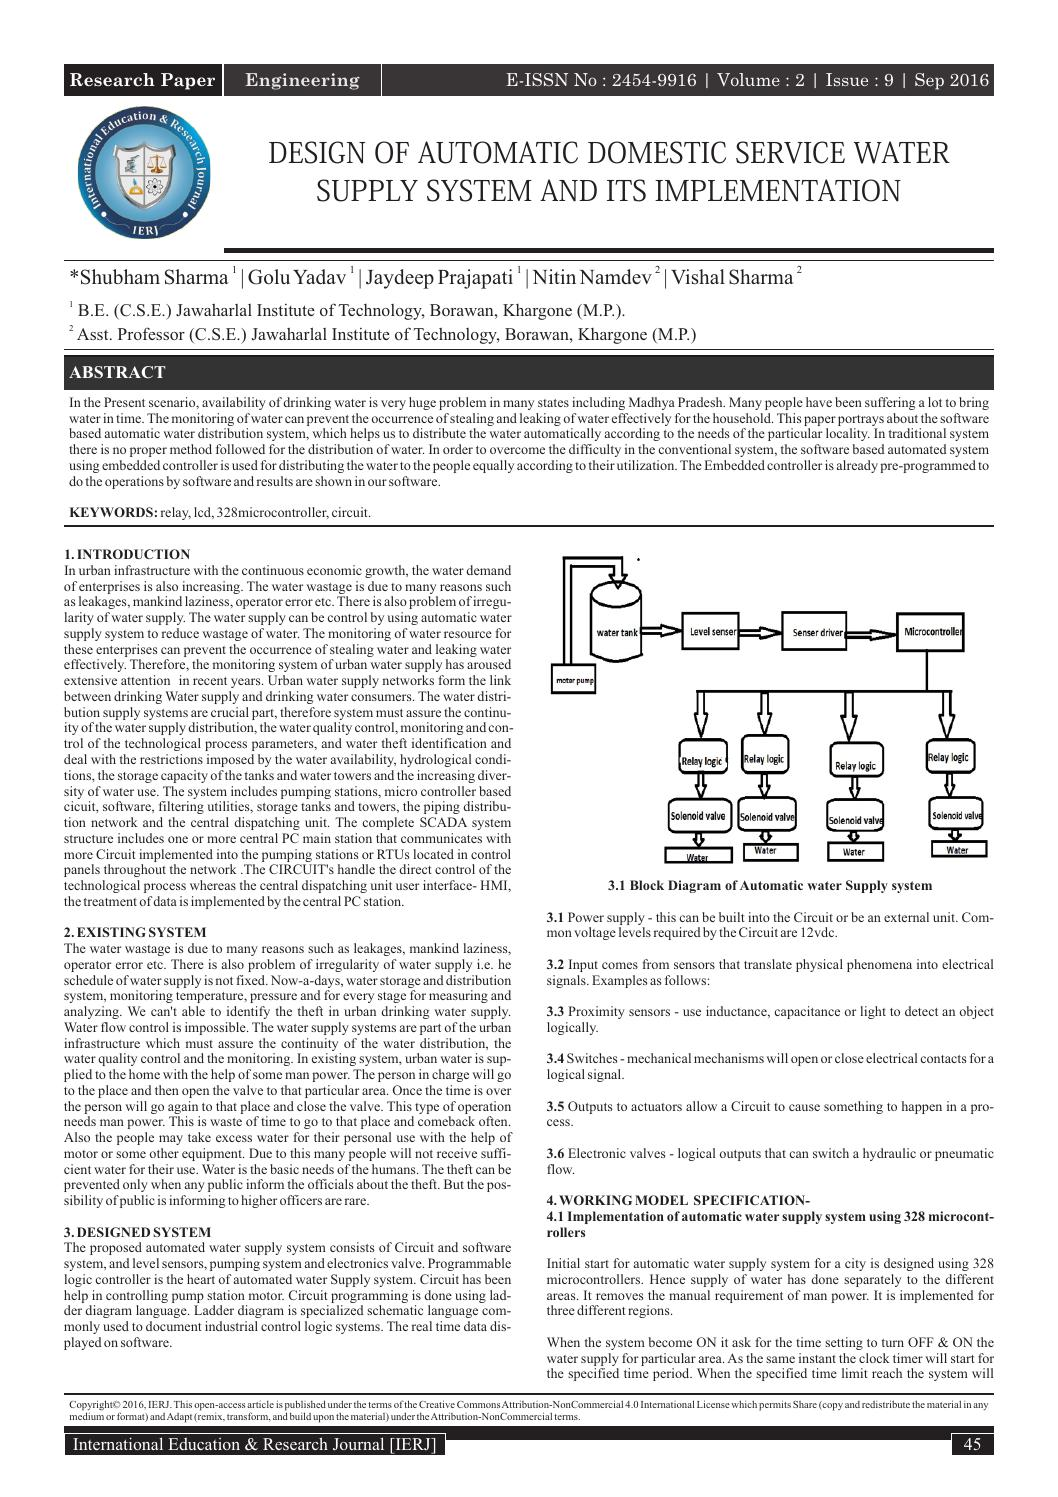 Design Of Automatic Domestic Service Water Supply System And Its Implementation By International Education And Research Journal Issuu